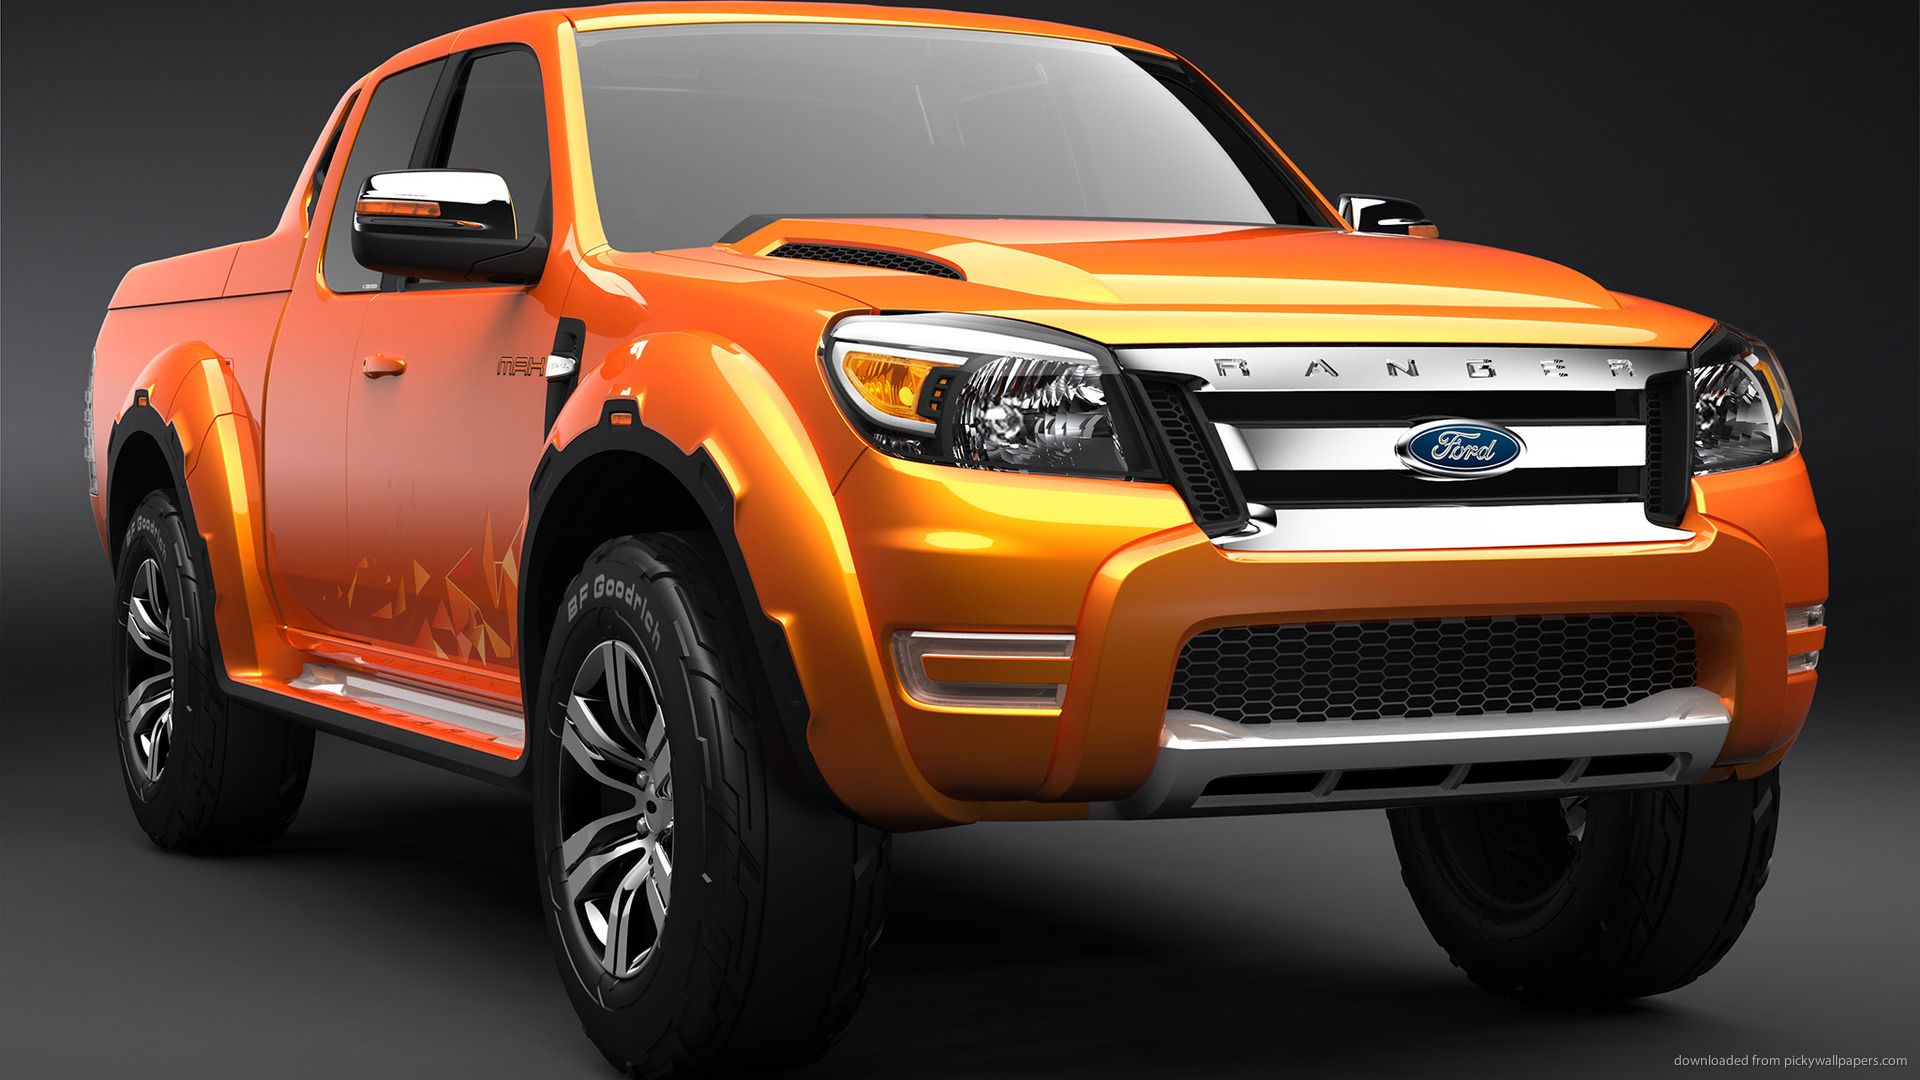 Orange Ford Ranger Concept Wallpaper For HTC Thunderbolt